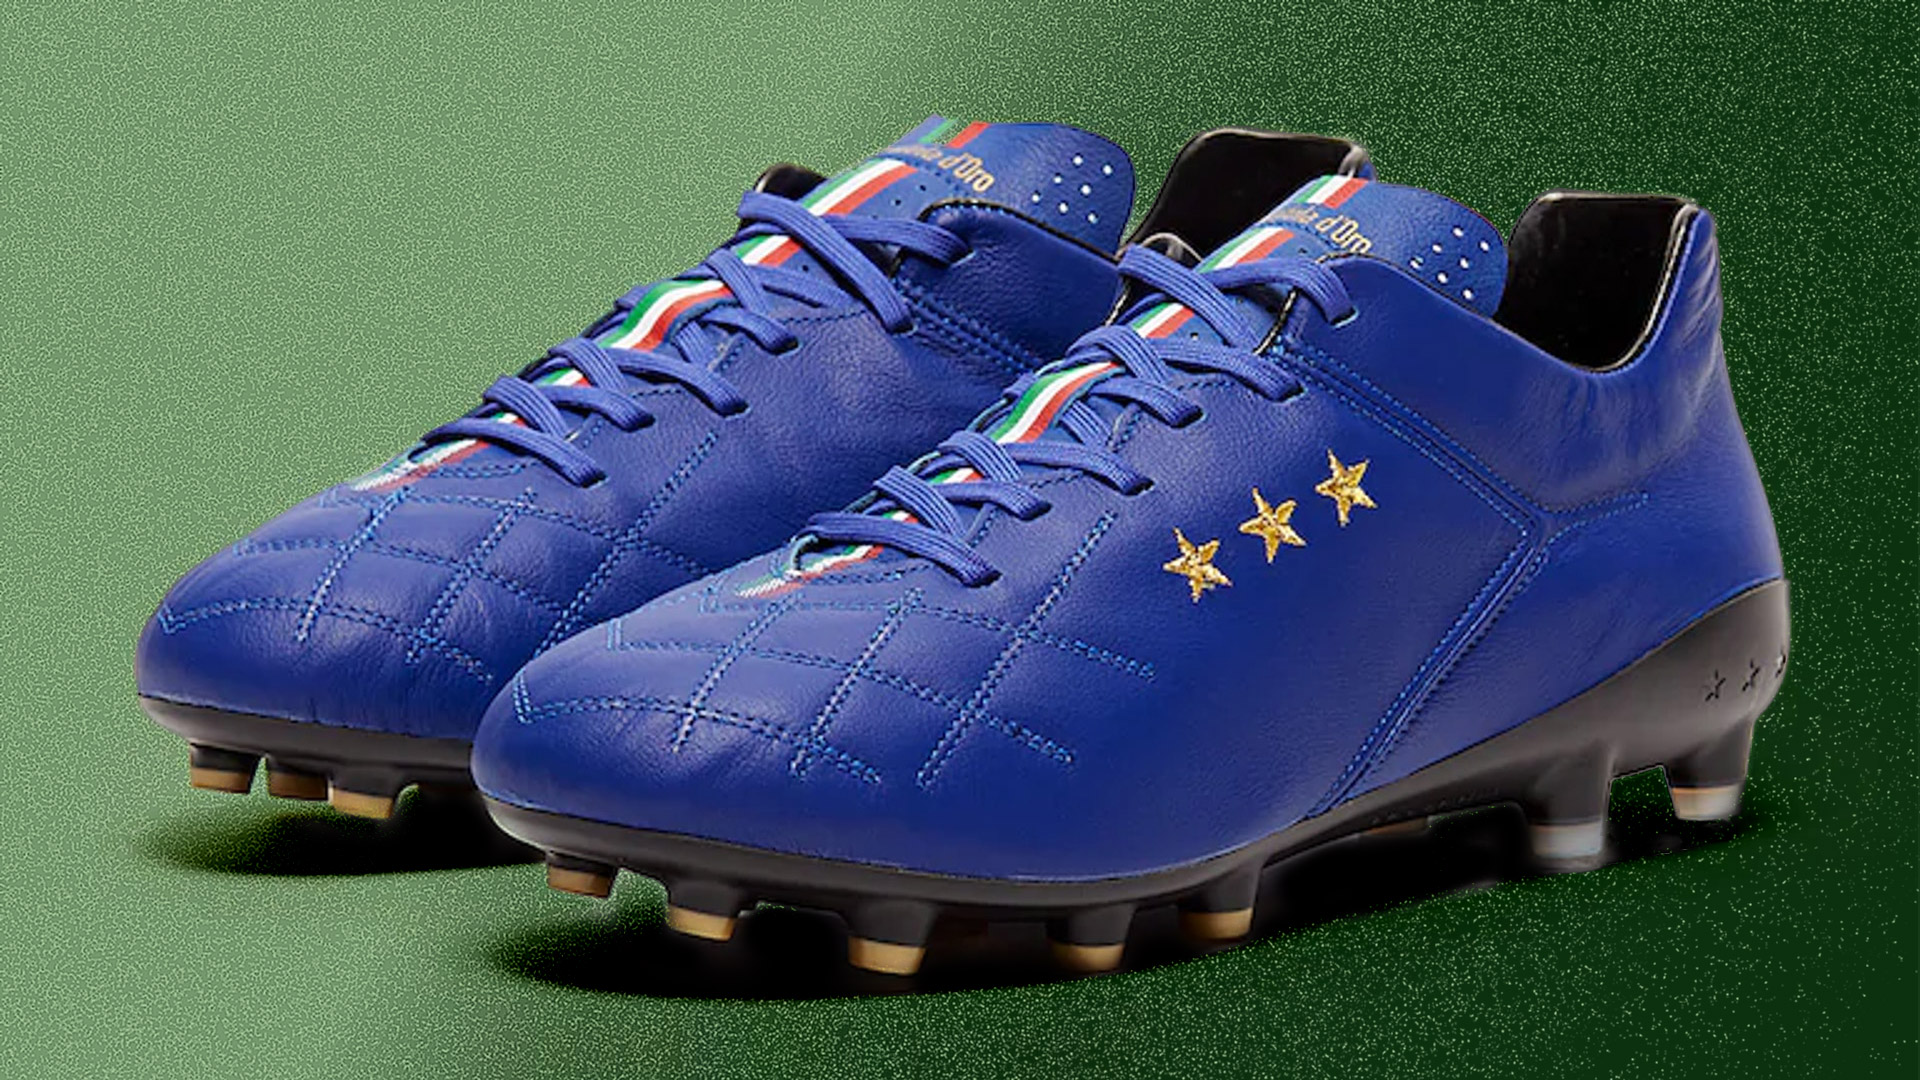 Best football boots 2020: From Nike to